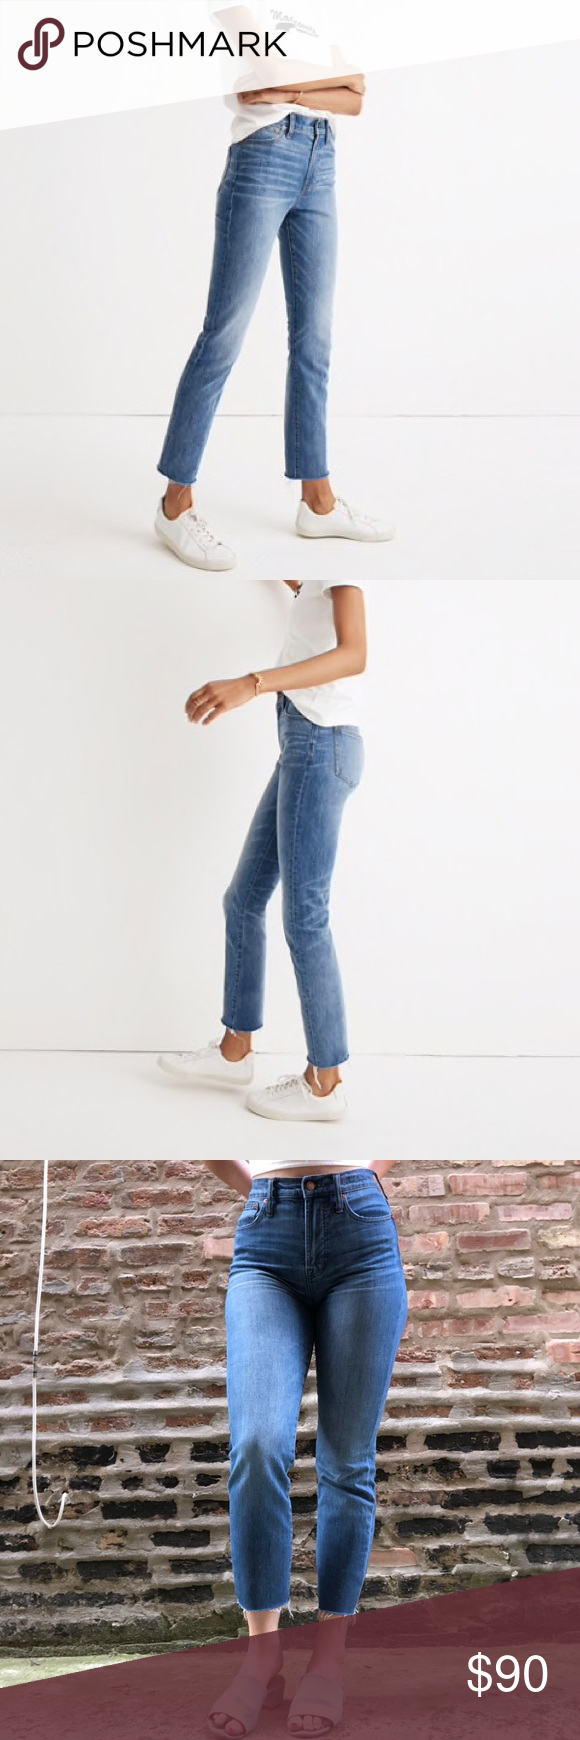 """2cf4f71a17 Madewell """"Perfect Vintage Jean"""" Comfort Stretch """"The Perfect Vintage Jean"""" Comfort  Stretch"""